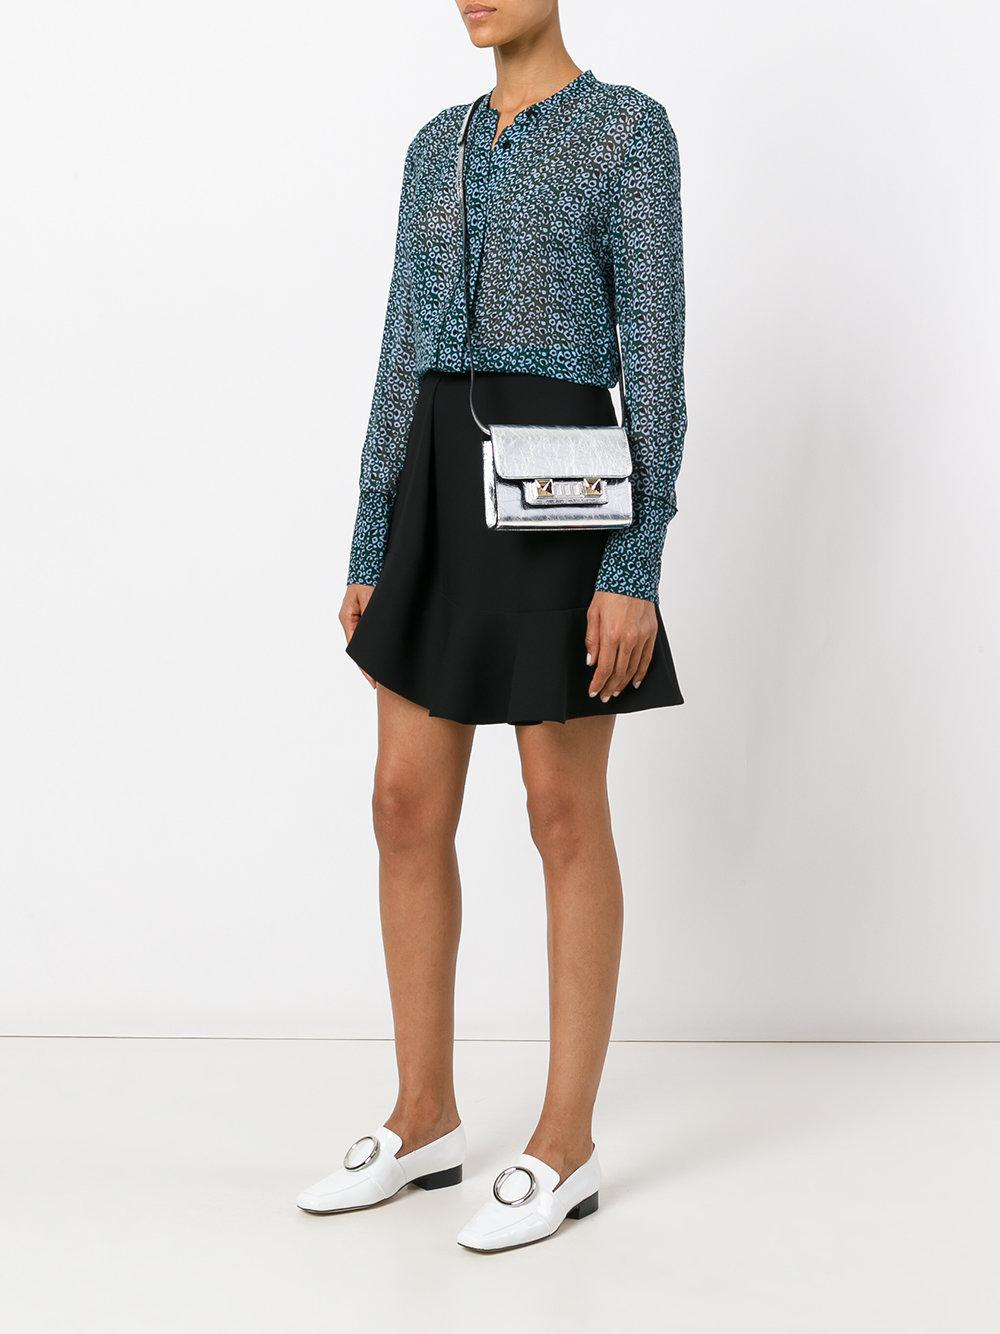 Proenza Schouler Leather Ps11 Tiny Crossbody Bag in Metallic